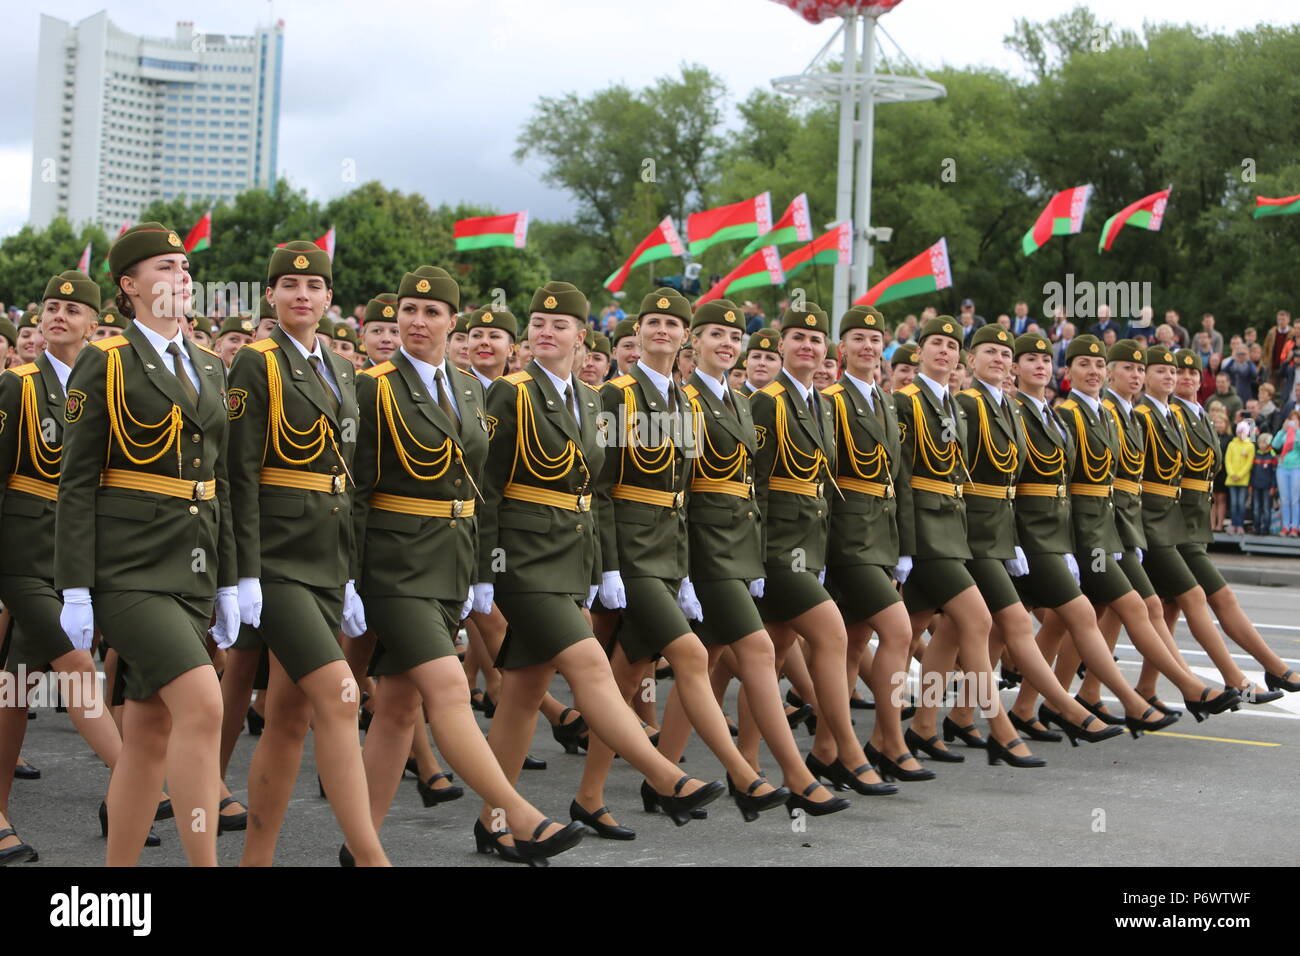 Minsk, Belarus. 3rd July, 2018. Servicewomen march during a military parade marking the Independence Day in Minsk, Belarus, July 3, 2018. Credit: Wei Zhongjie/Xinhua/Alamy Live News - Stock Image